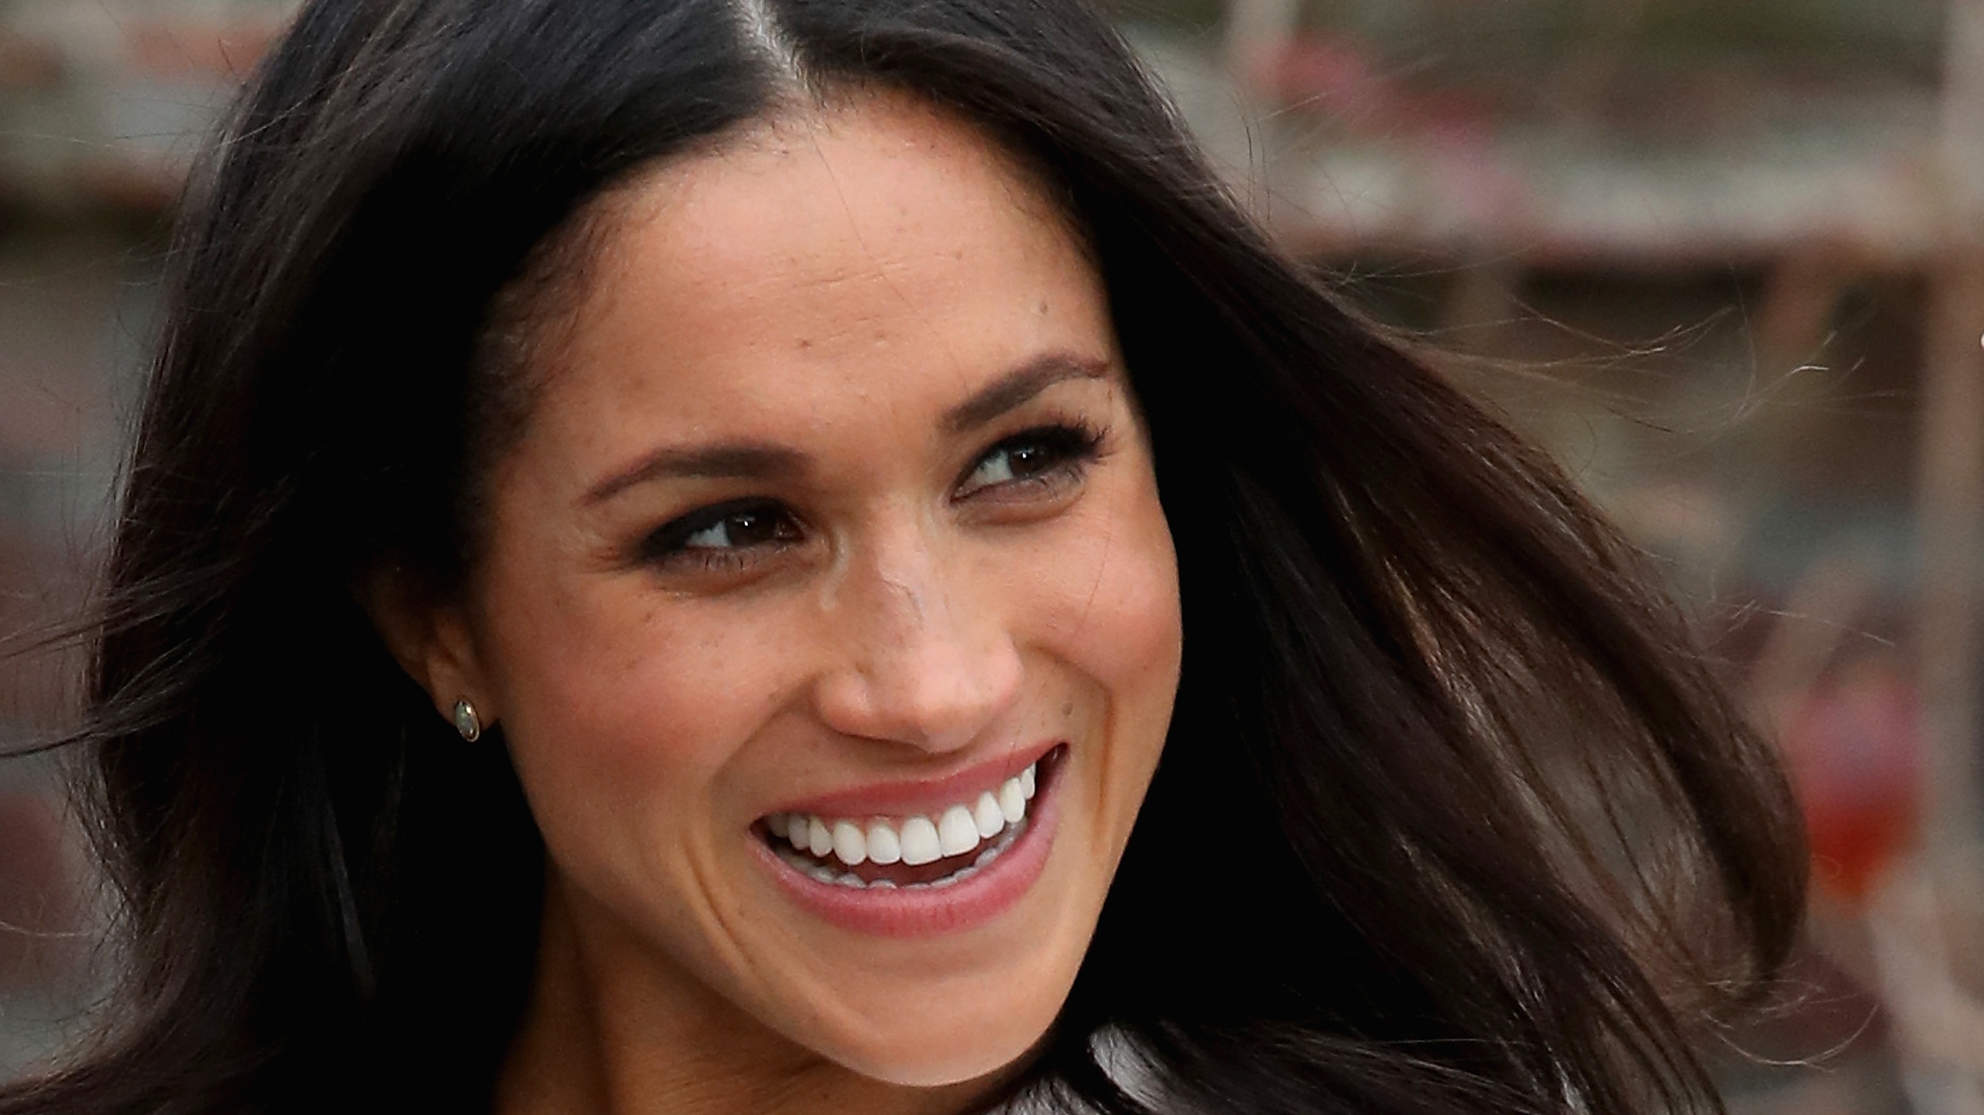 Here Are the Hair, Makeup, and Skincare Products Meghan Markle Swears By